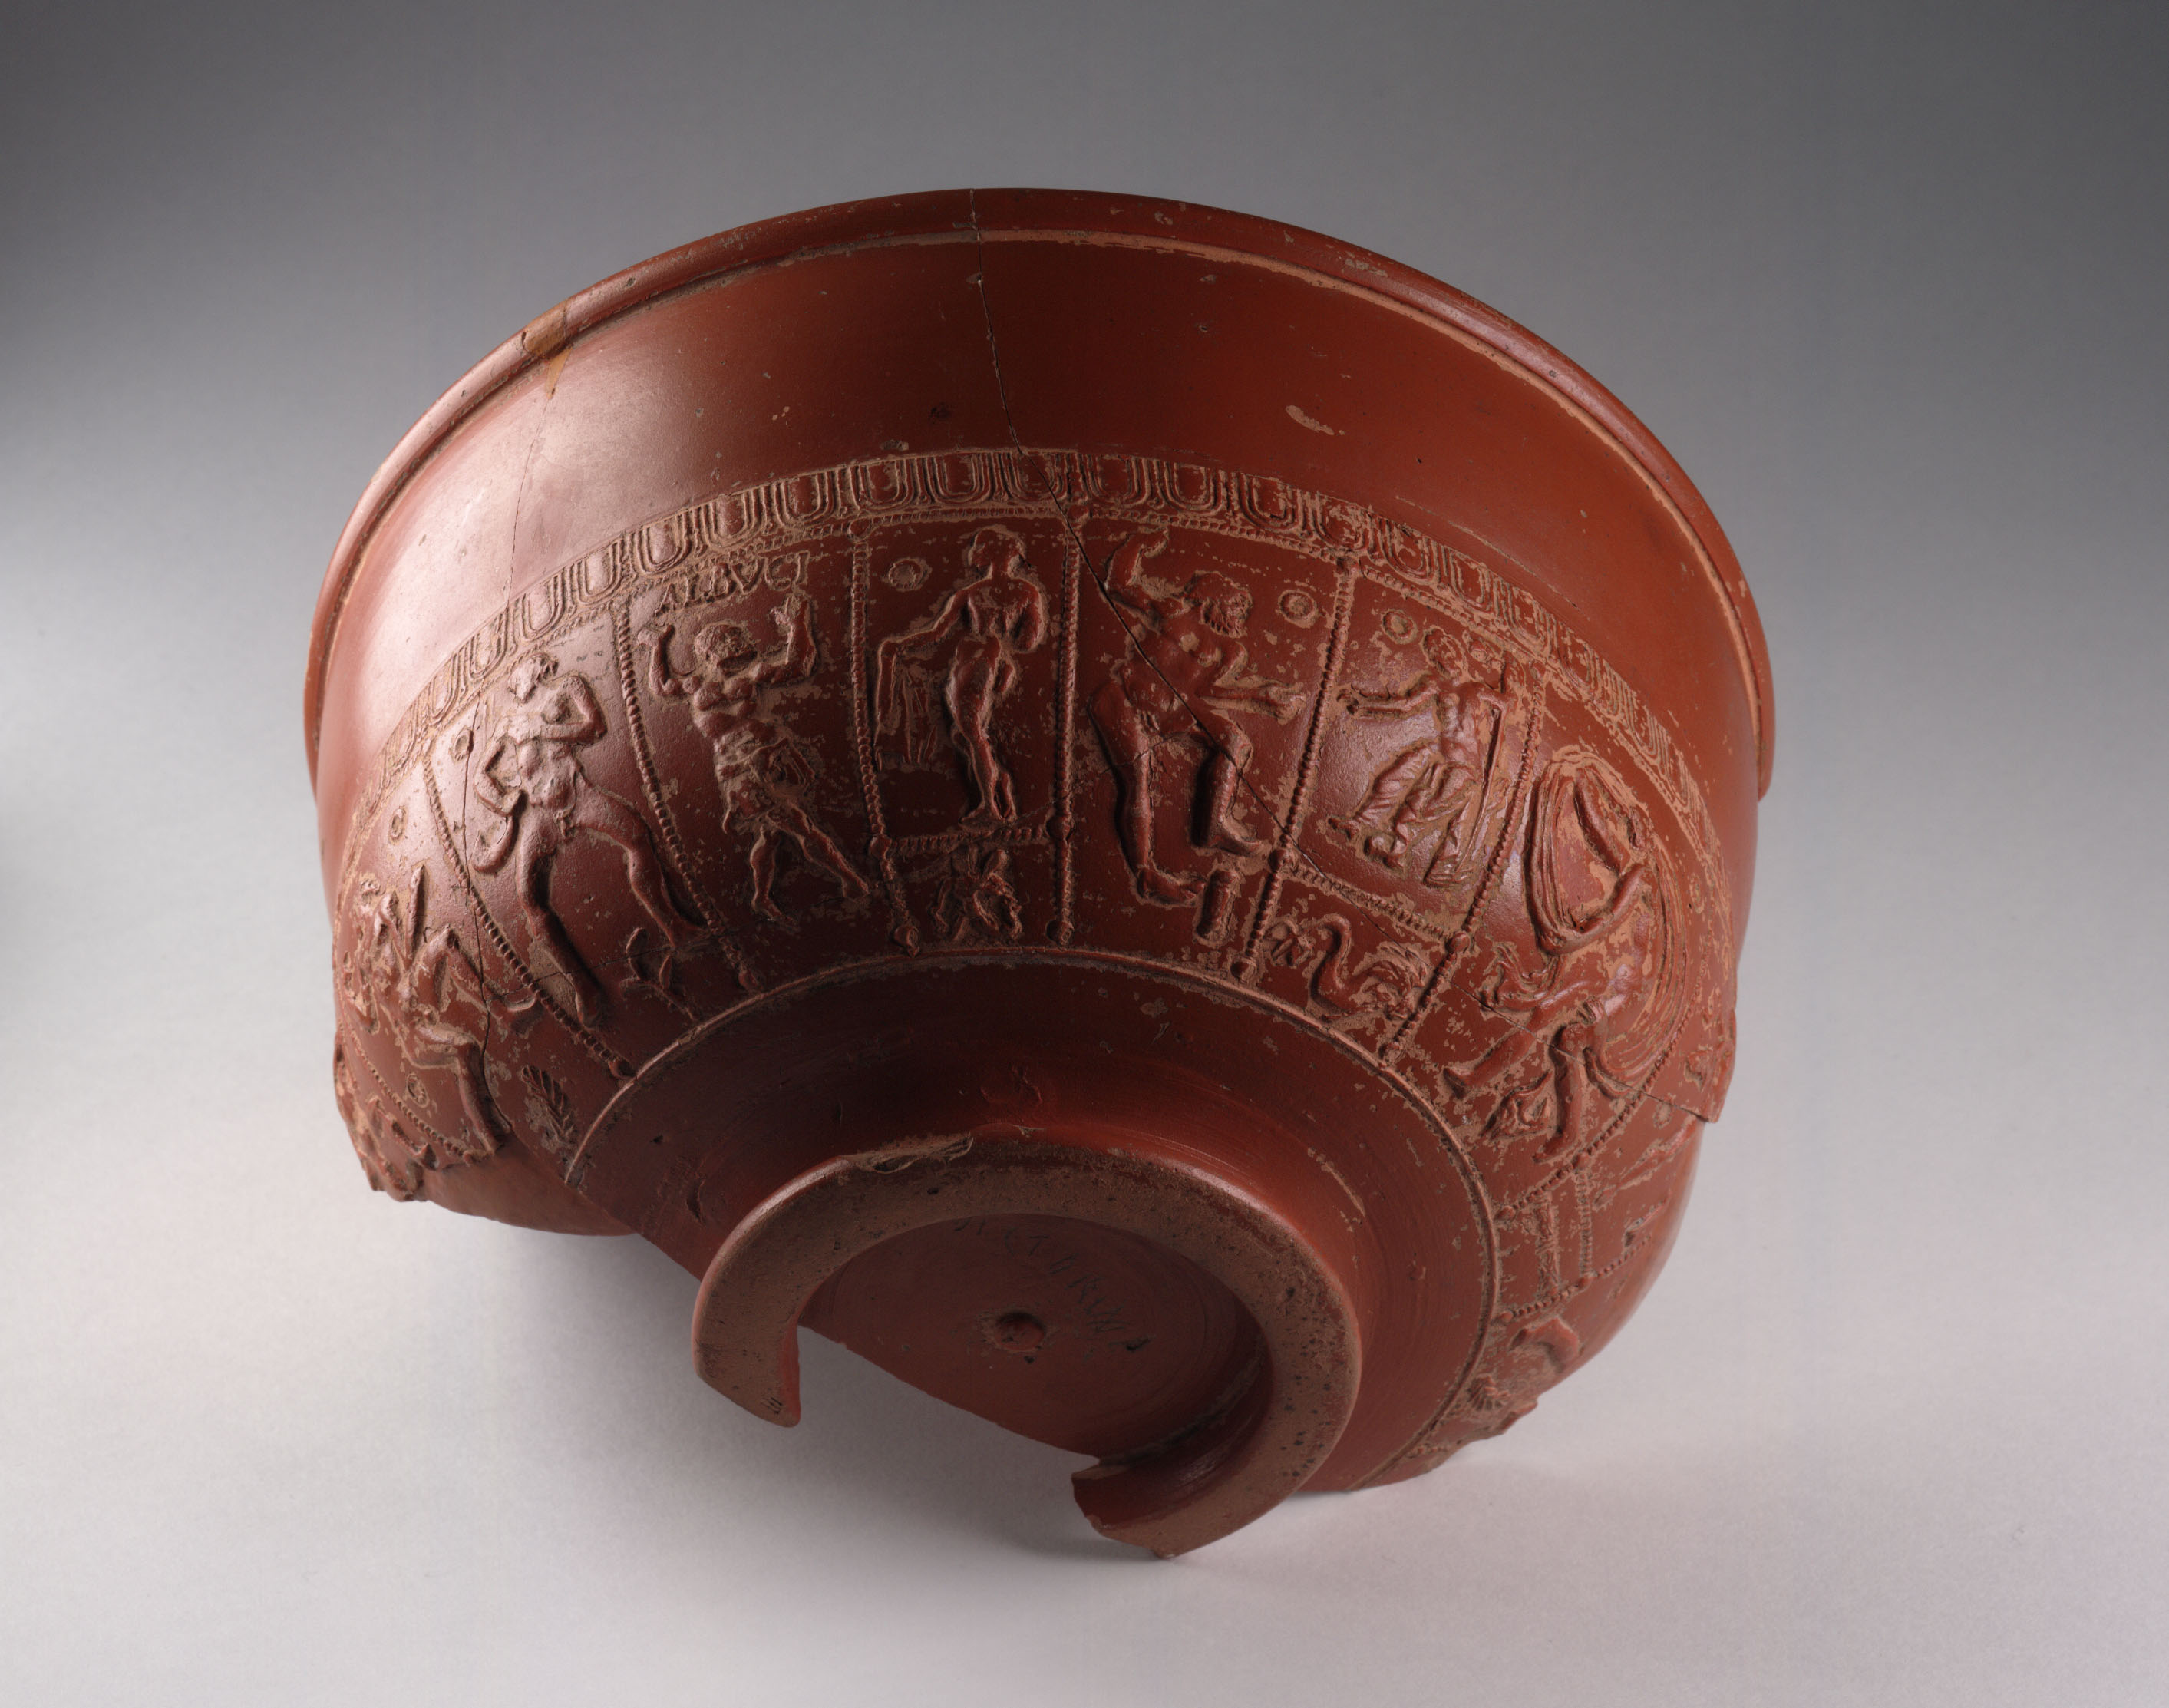 Roman bowl from Inveresk